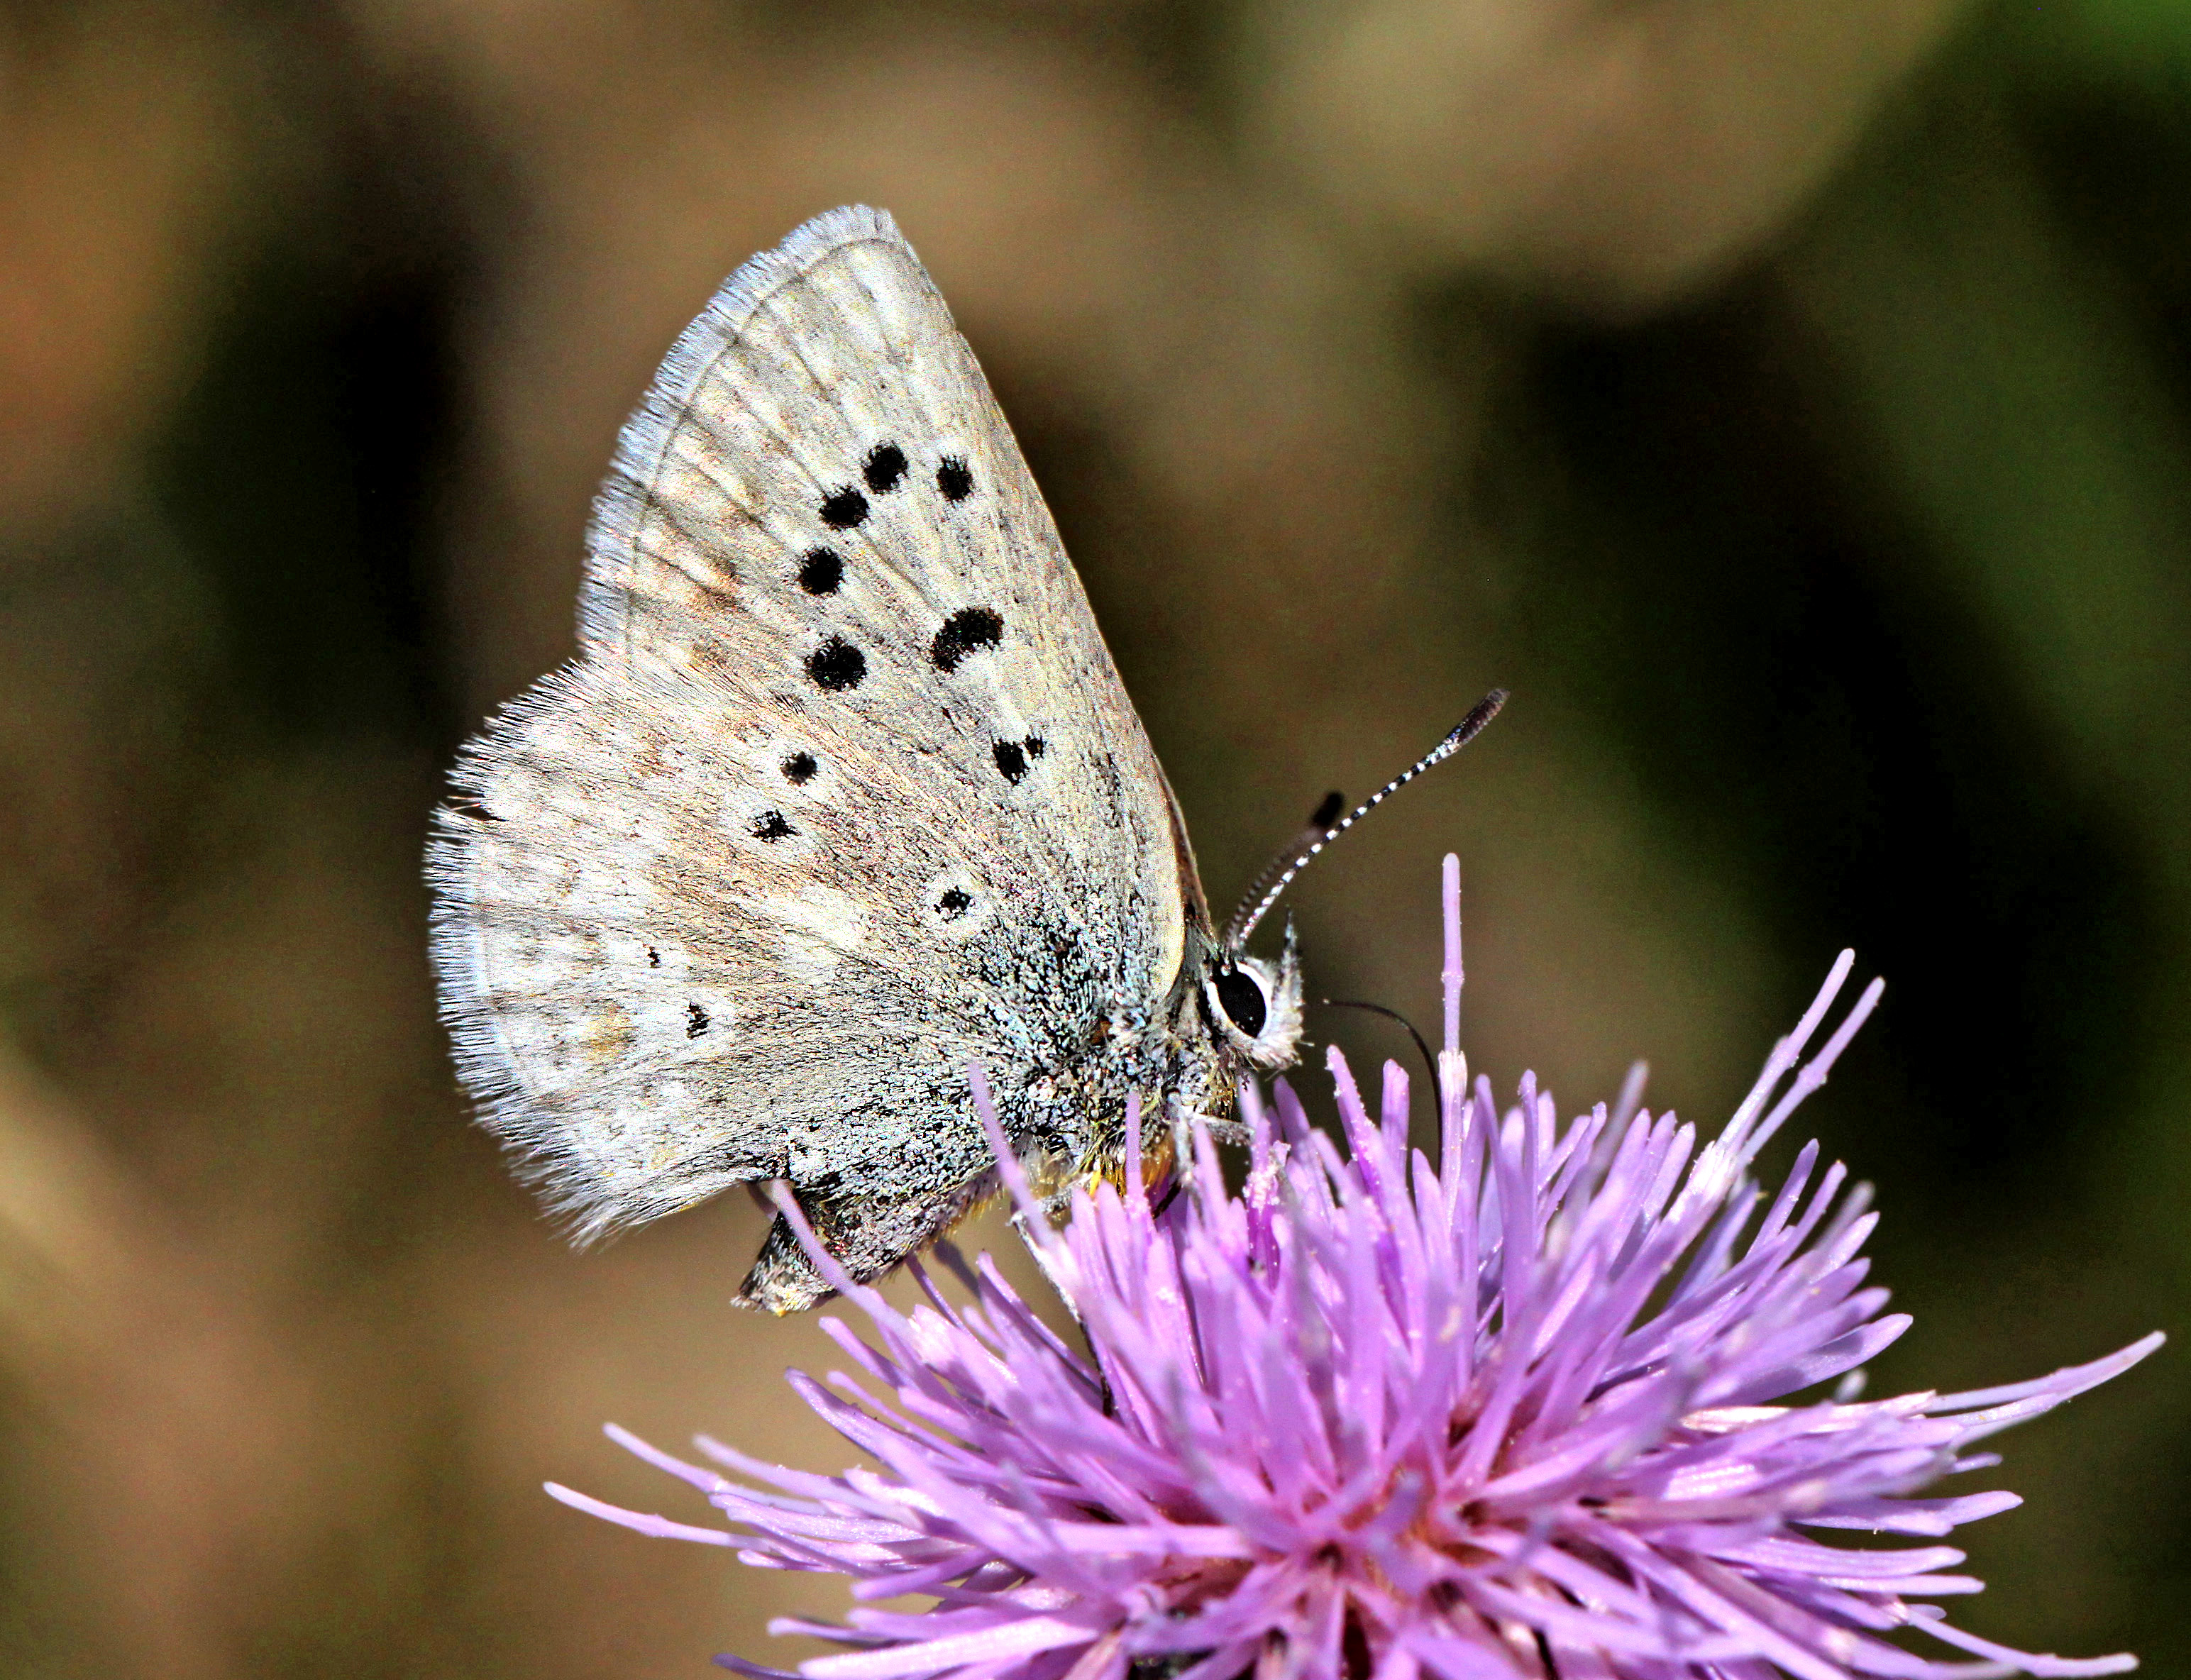 Blue, arctic (plebejus glandon) (8-21-12) near bristol head, west of creede, mineral co, co (2) photo